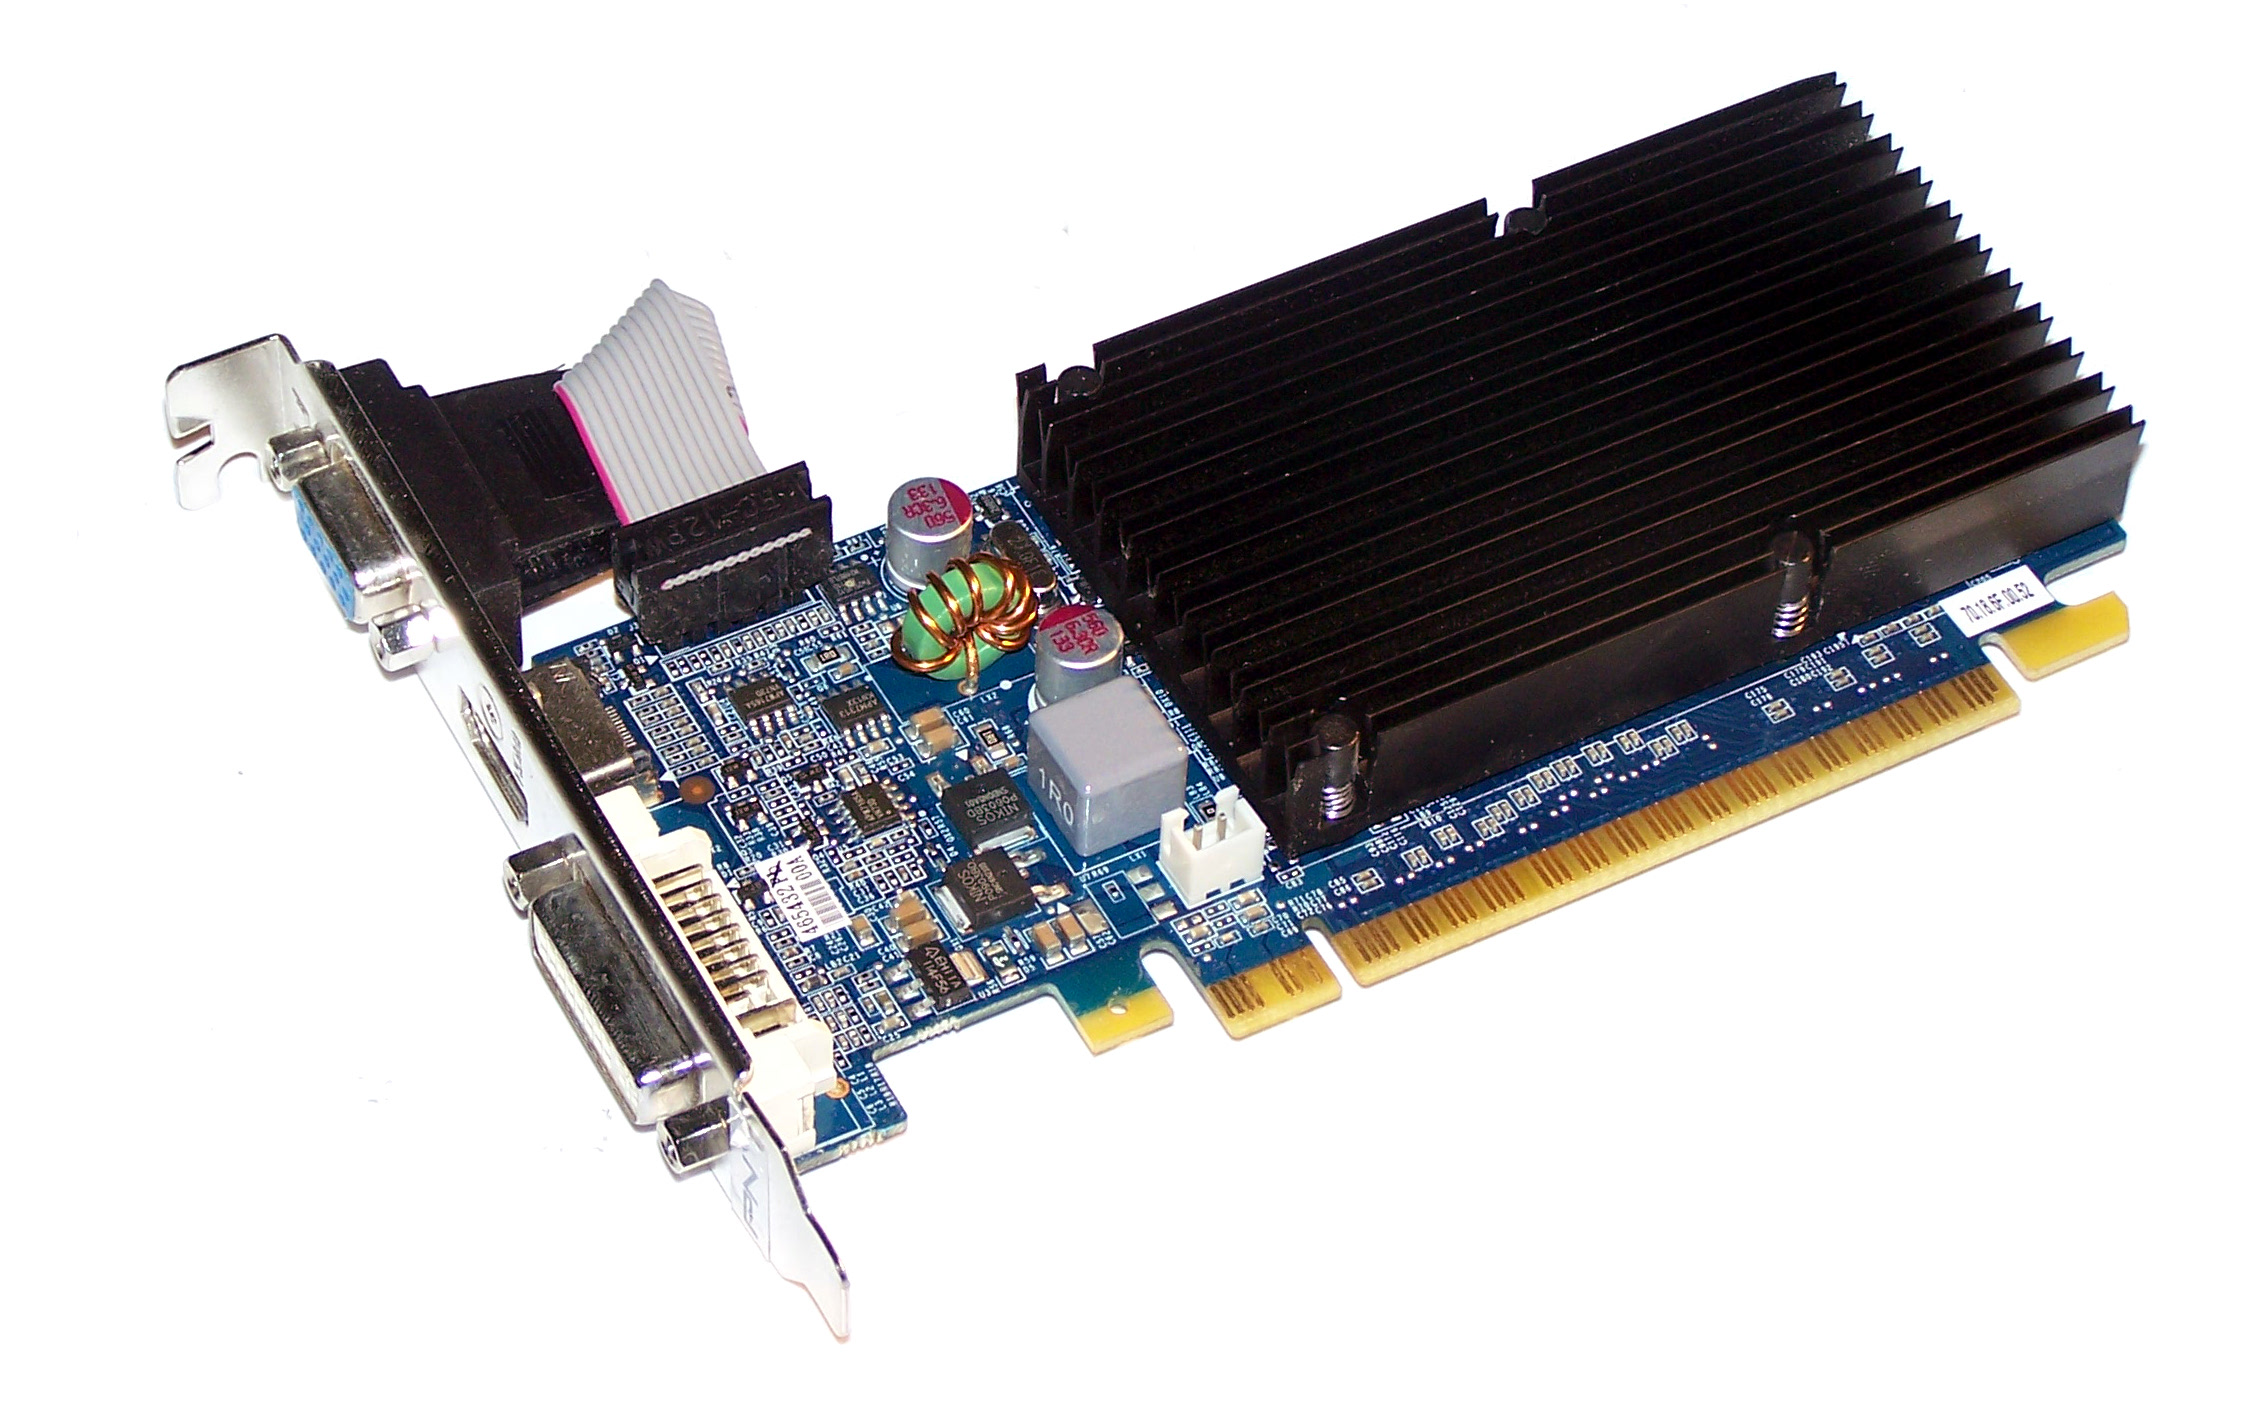 PC Parts Unlimited VCG84R2SXPB Pny GeForce 8400GS 256MB Dvi Vga Tv-Out